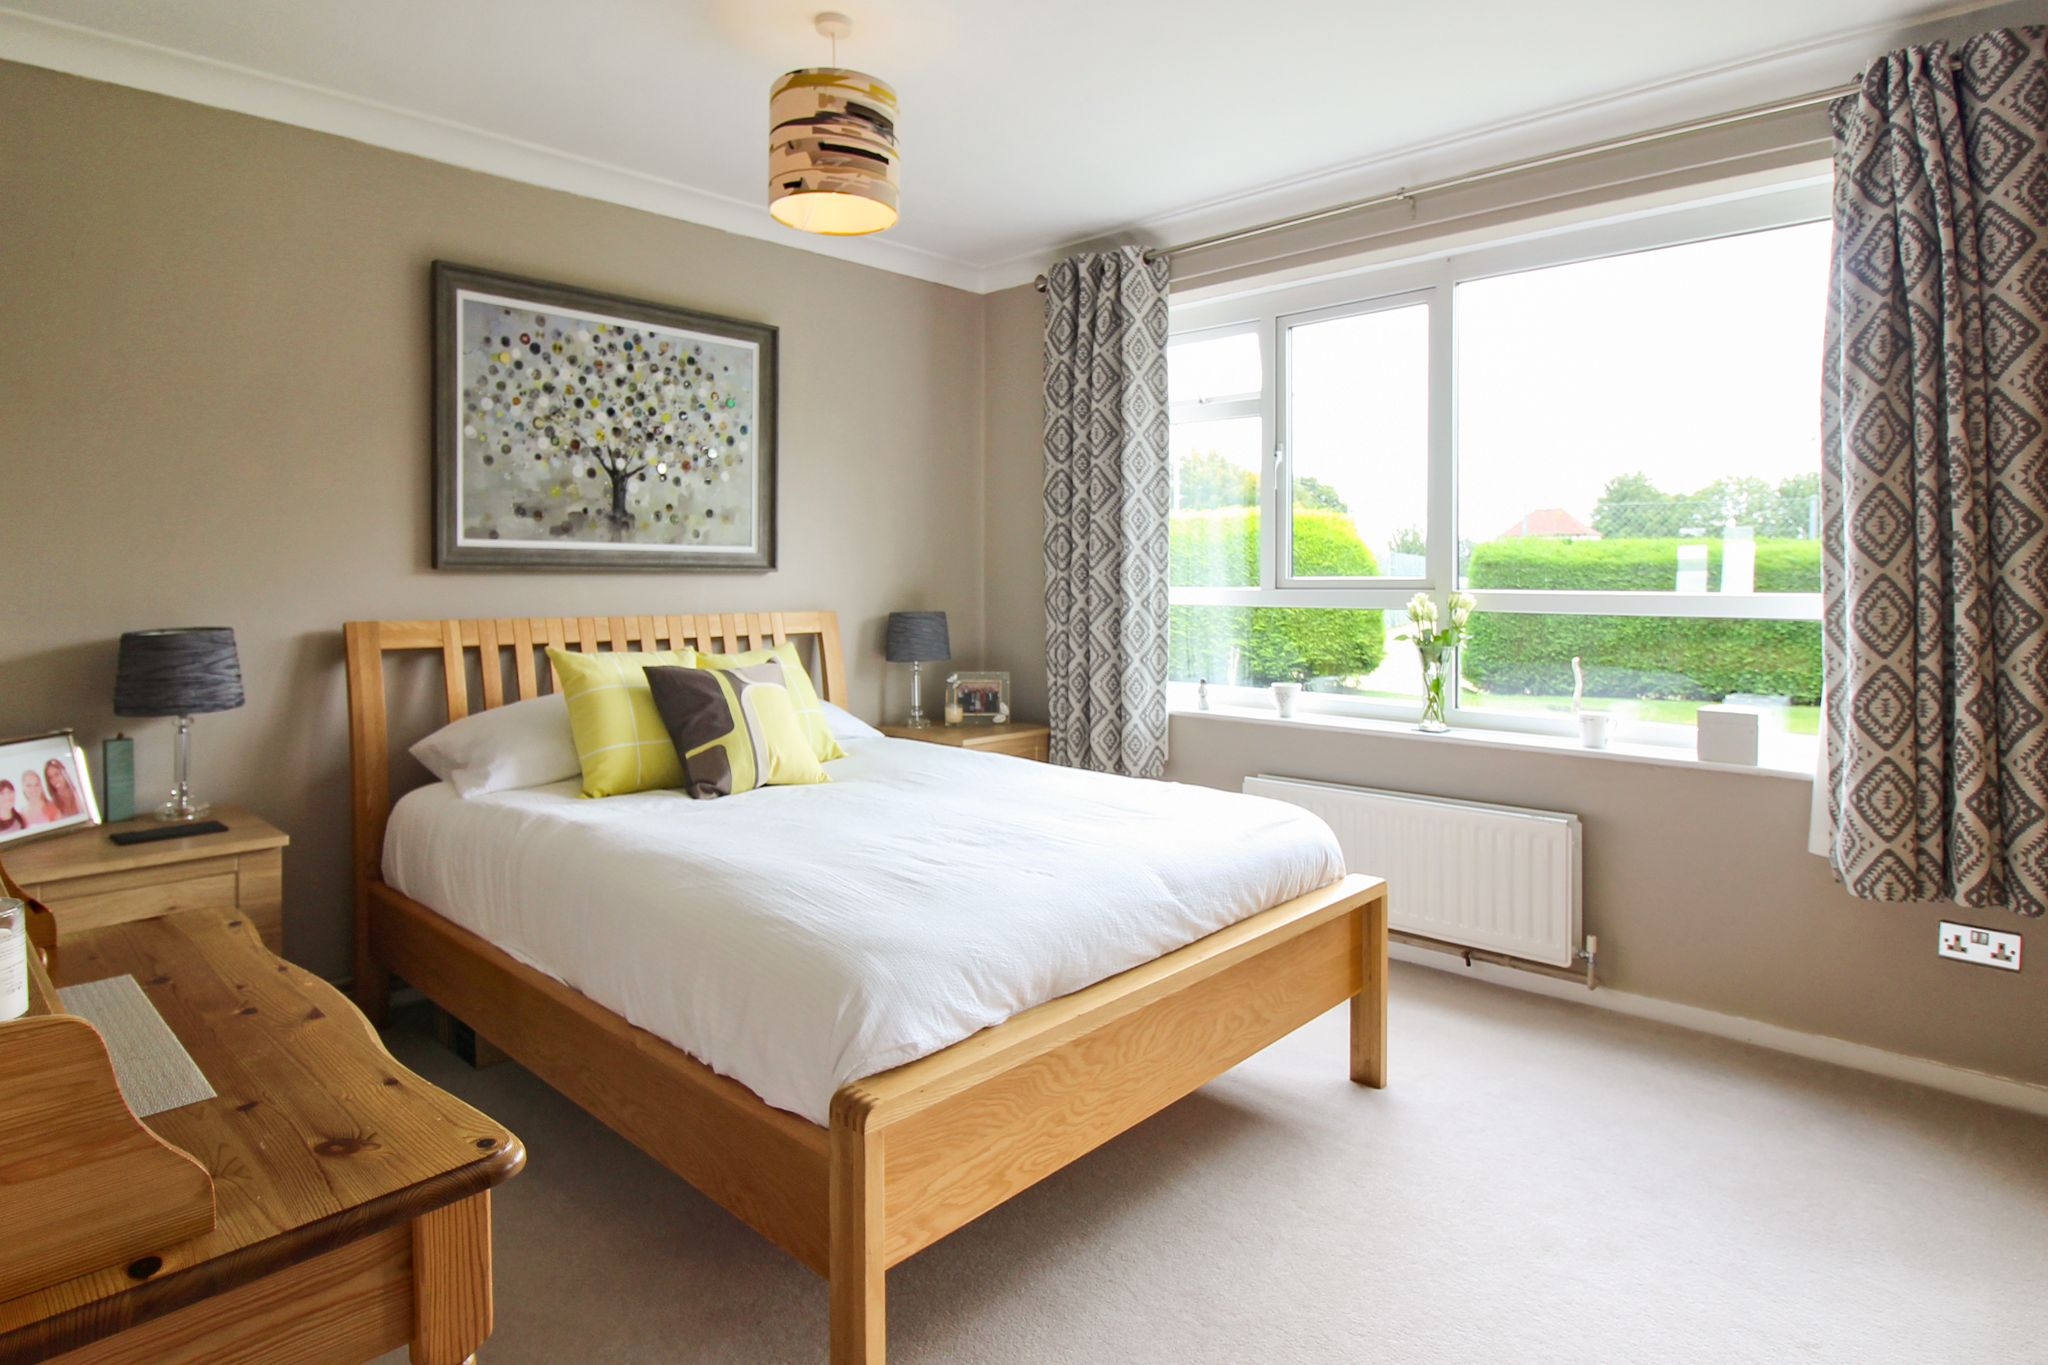 2 bedroom ground floor flat/apartment For Sale in Solihull - Photograph 6.